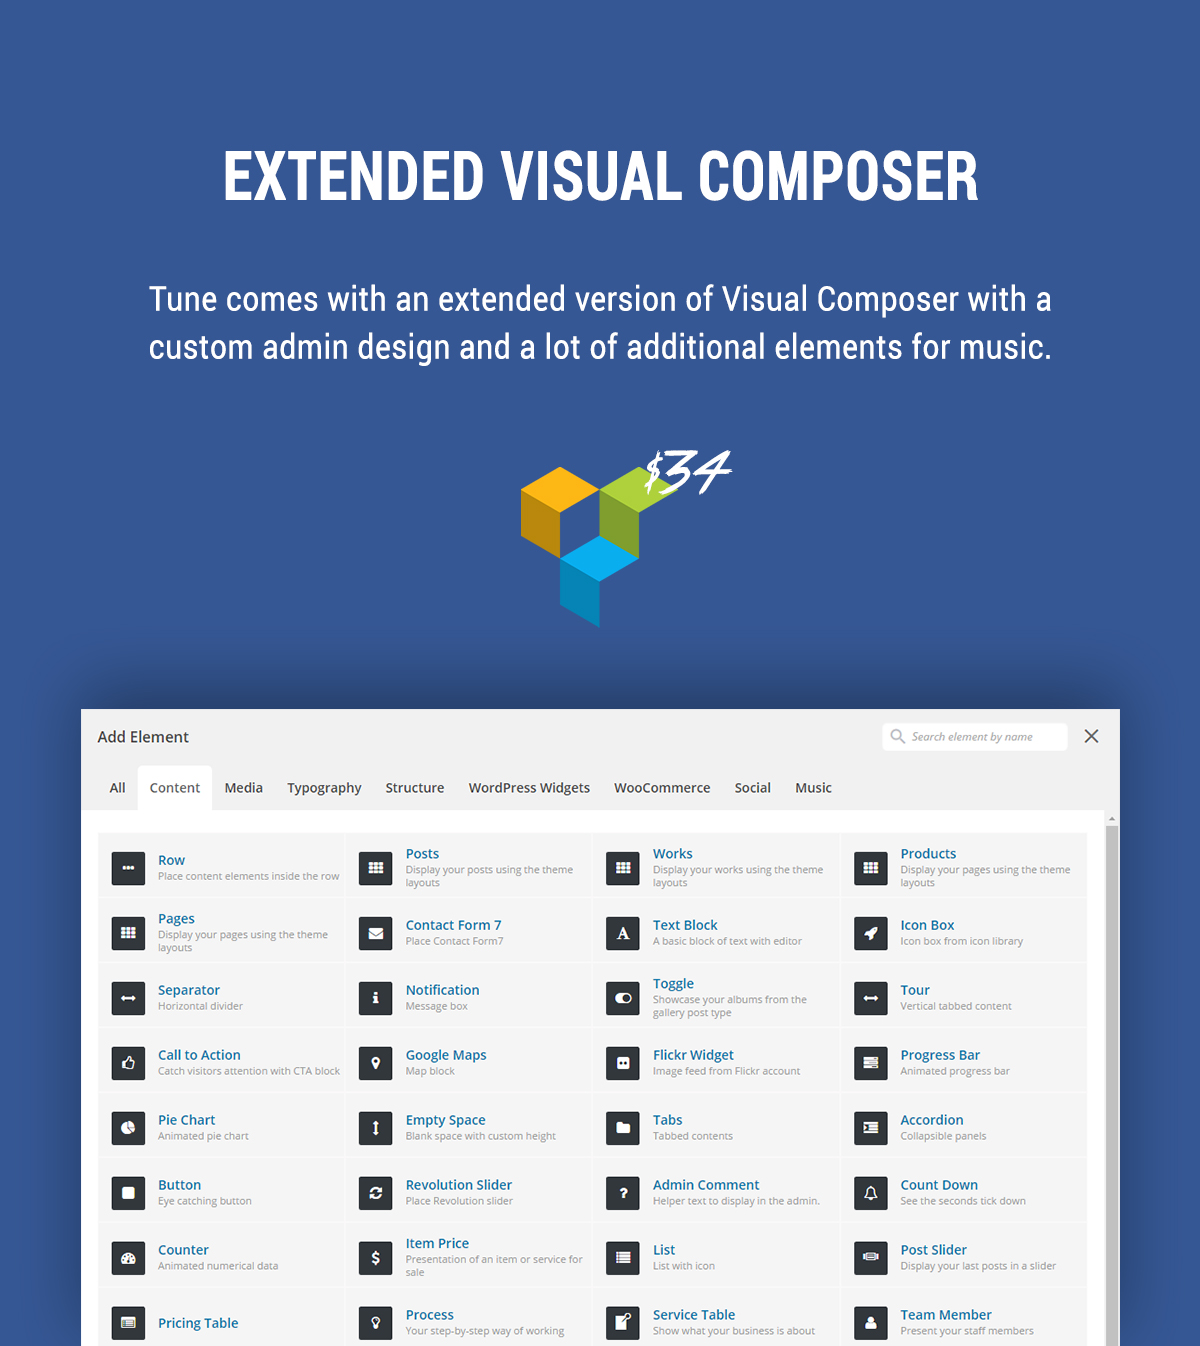 Extended Visual Composer